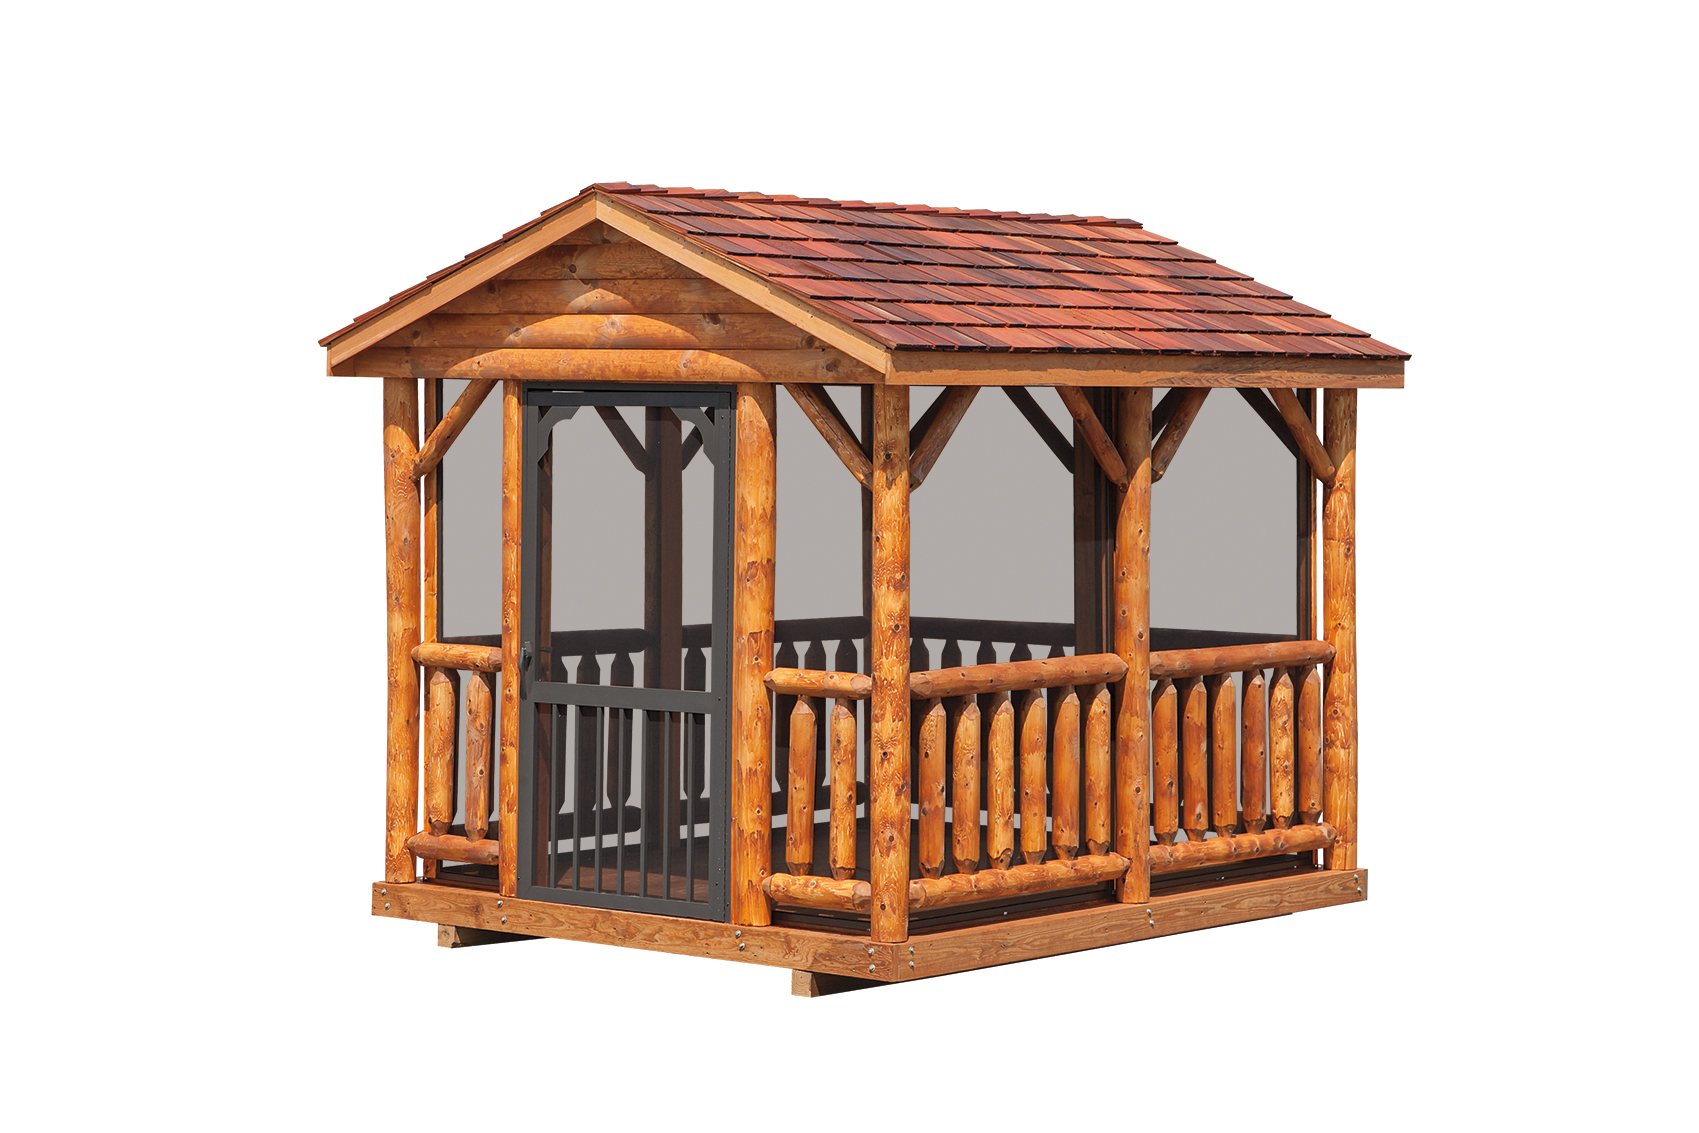 8 x 10 log gazebo amish sheds from bob foote for Rustic gazebo kits